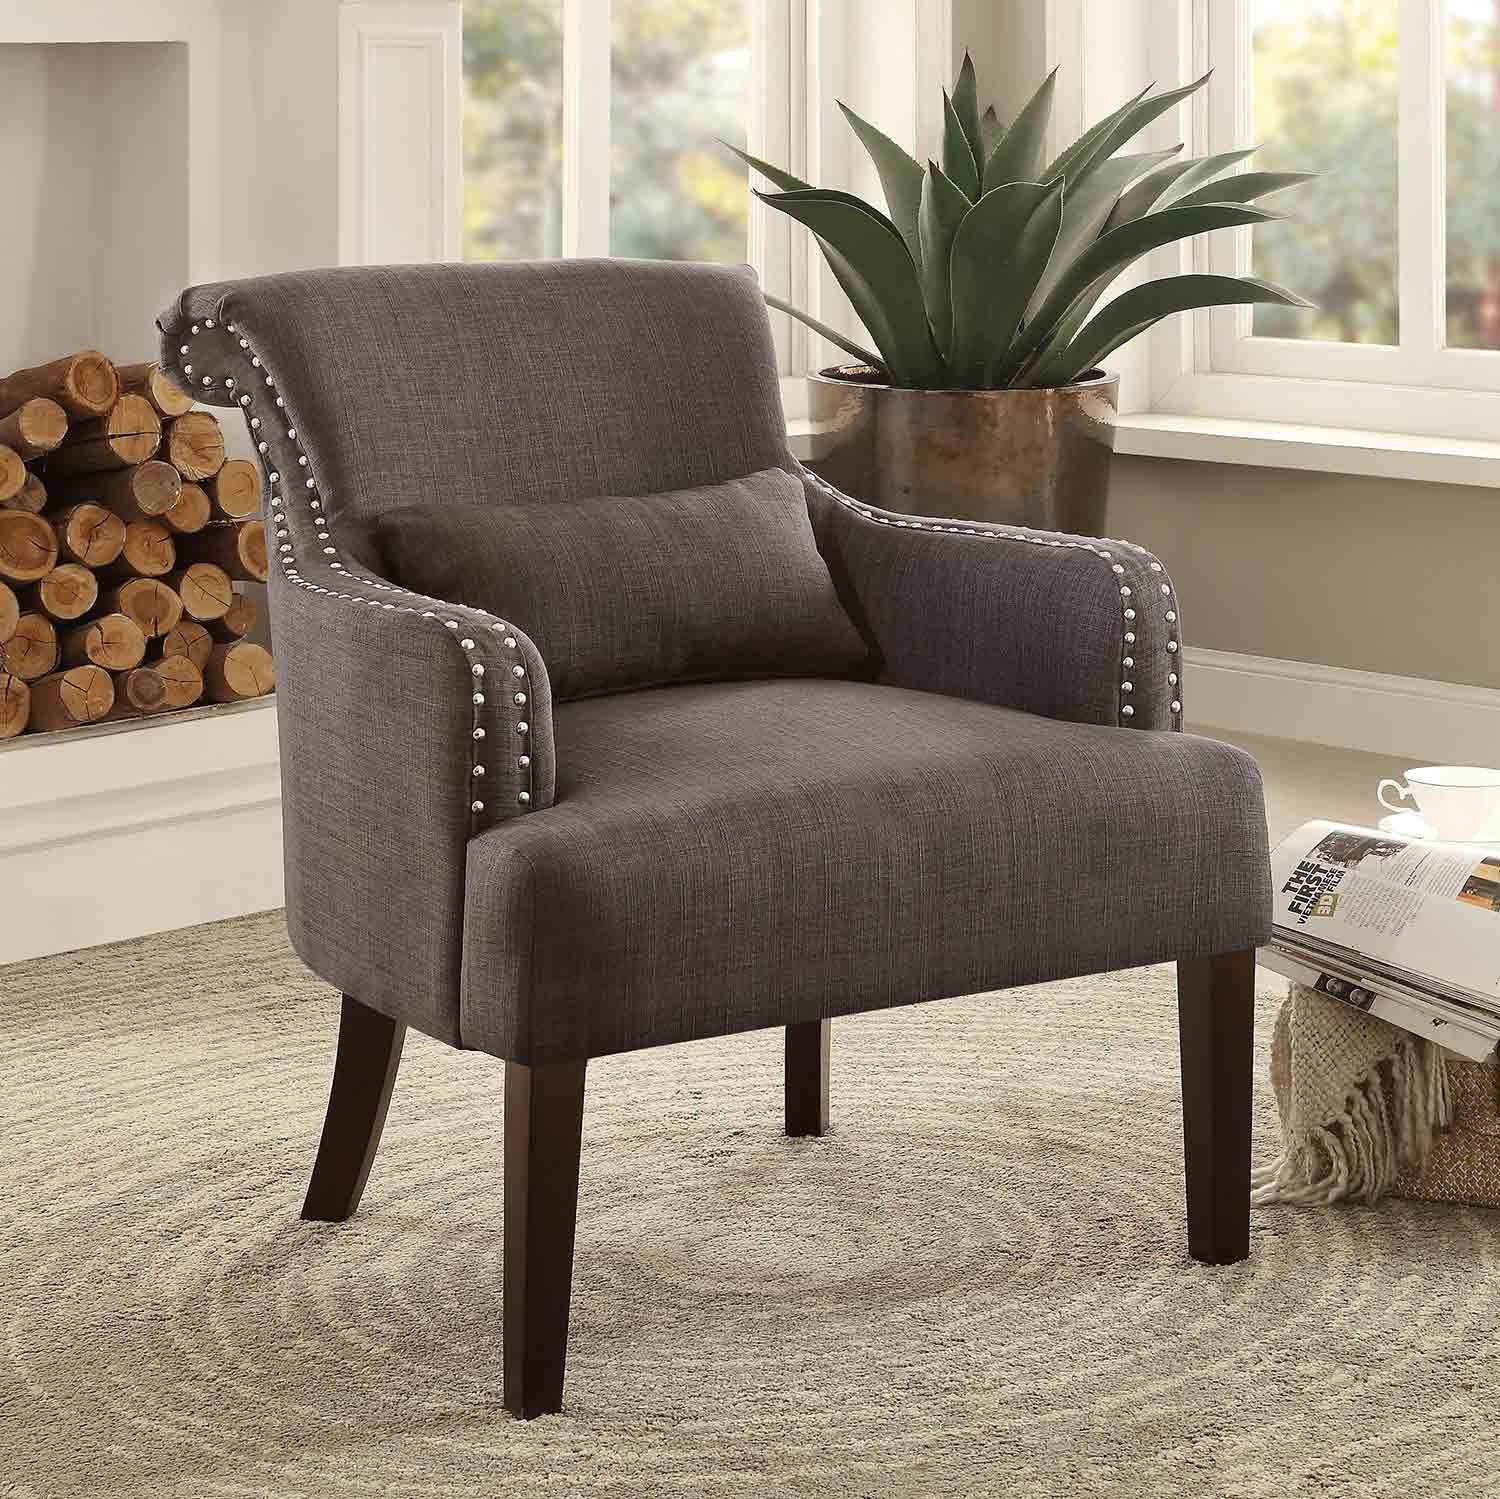 Homelegance Reedley Accent Chair with 1 Kidney Pillow - Chocolate